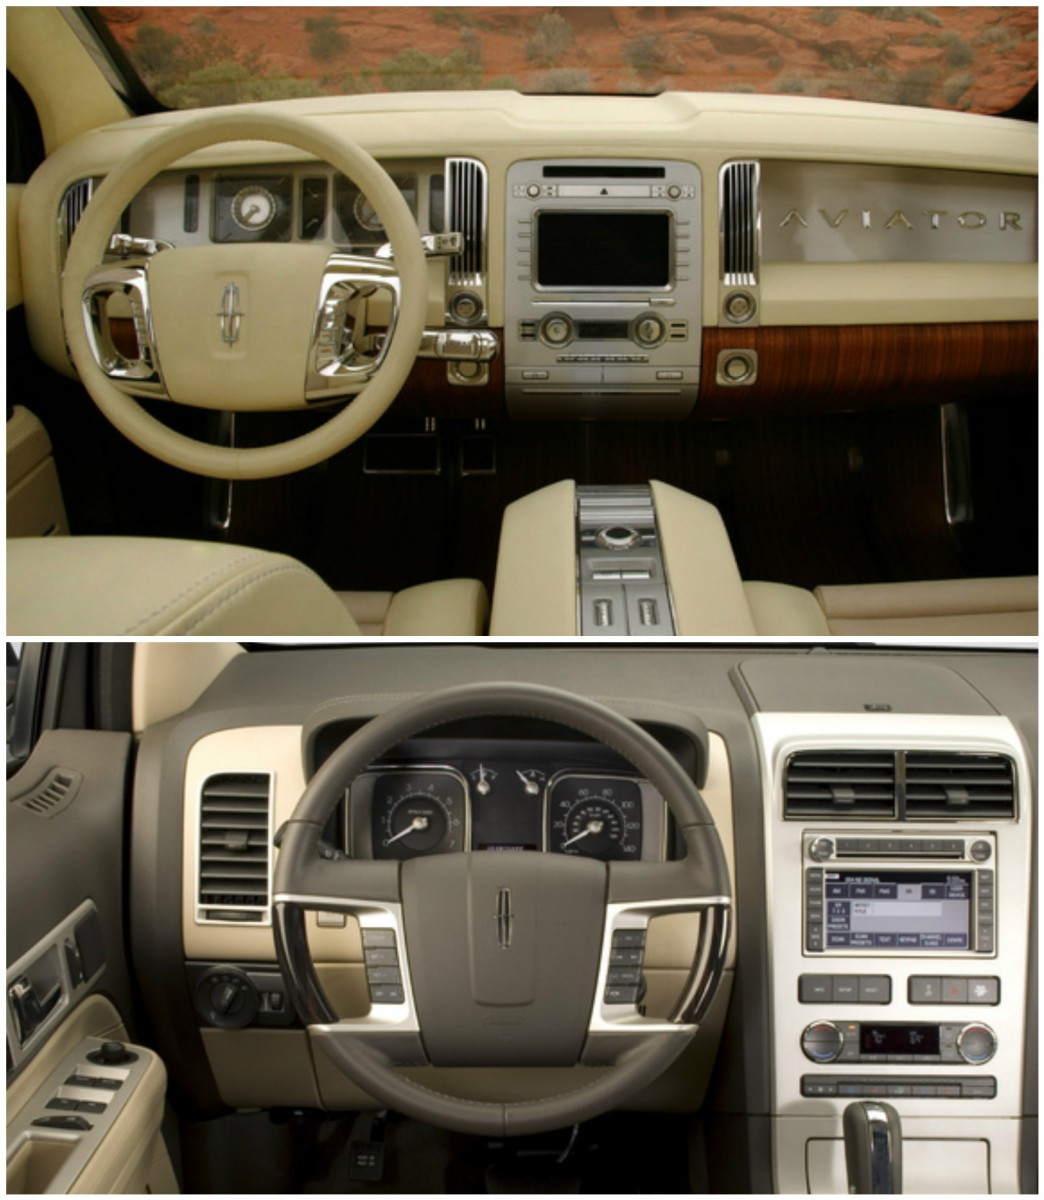 https://i1.wp.com/www.curbsideclassic.com/wp-content/uploads/2018/03/lincoln-aviator-concept-and-mkx-interior.jpg